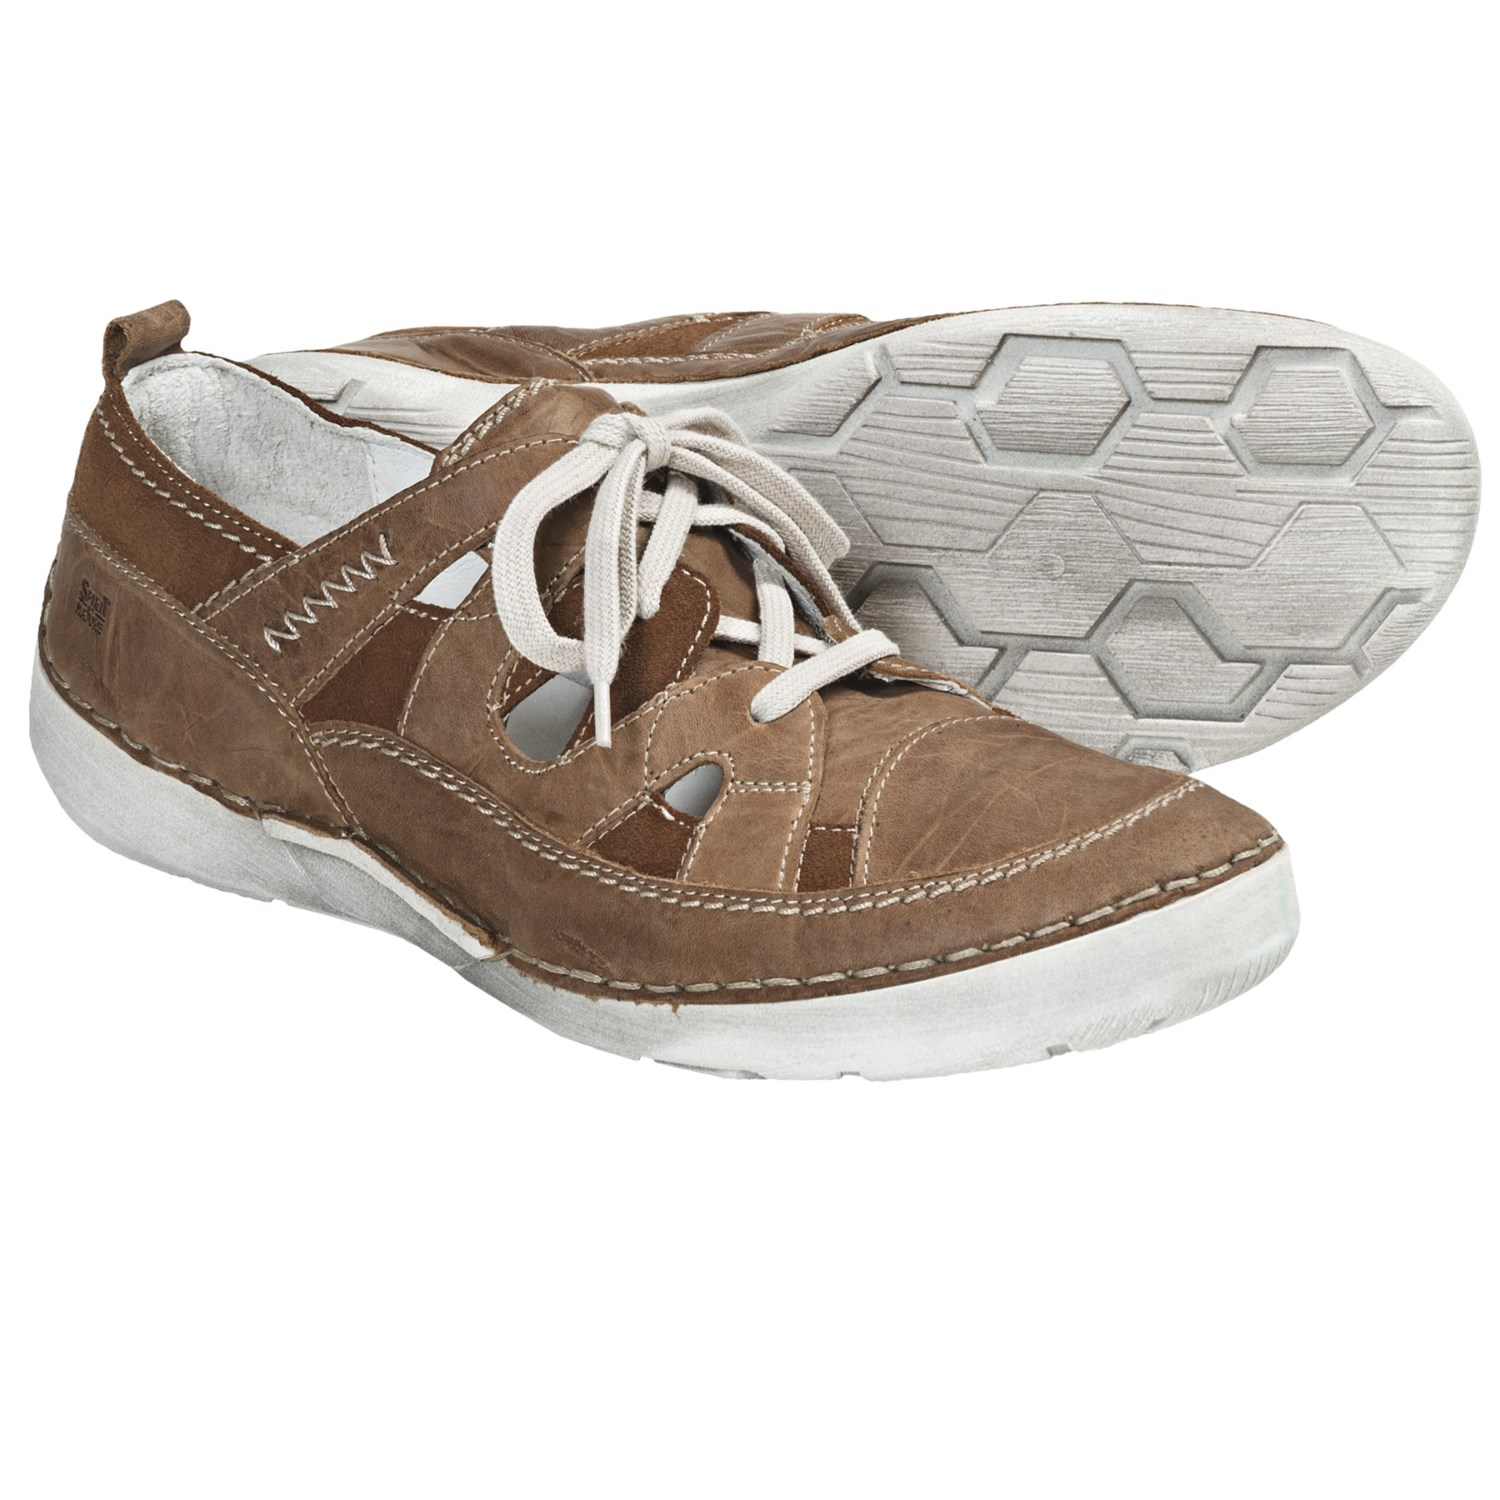 Josef Seibel Felicia Leather Shoes - Lace-Ups (For Women) in Bark